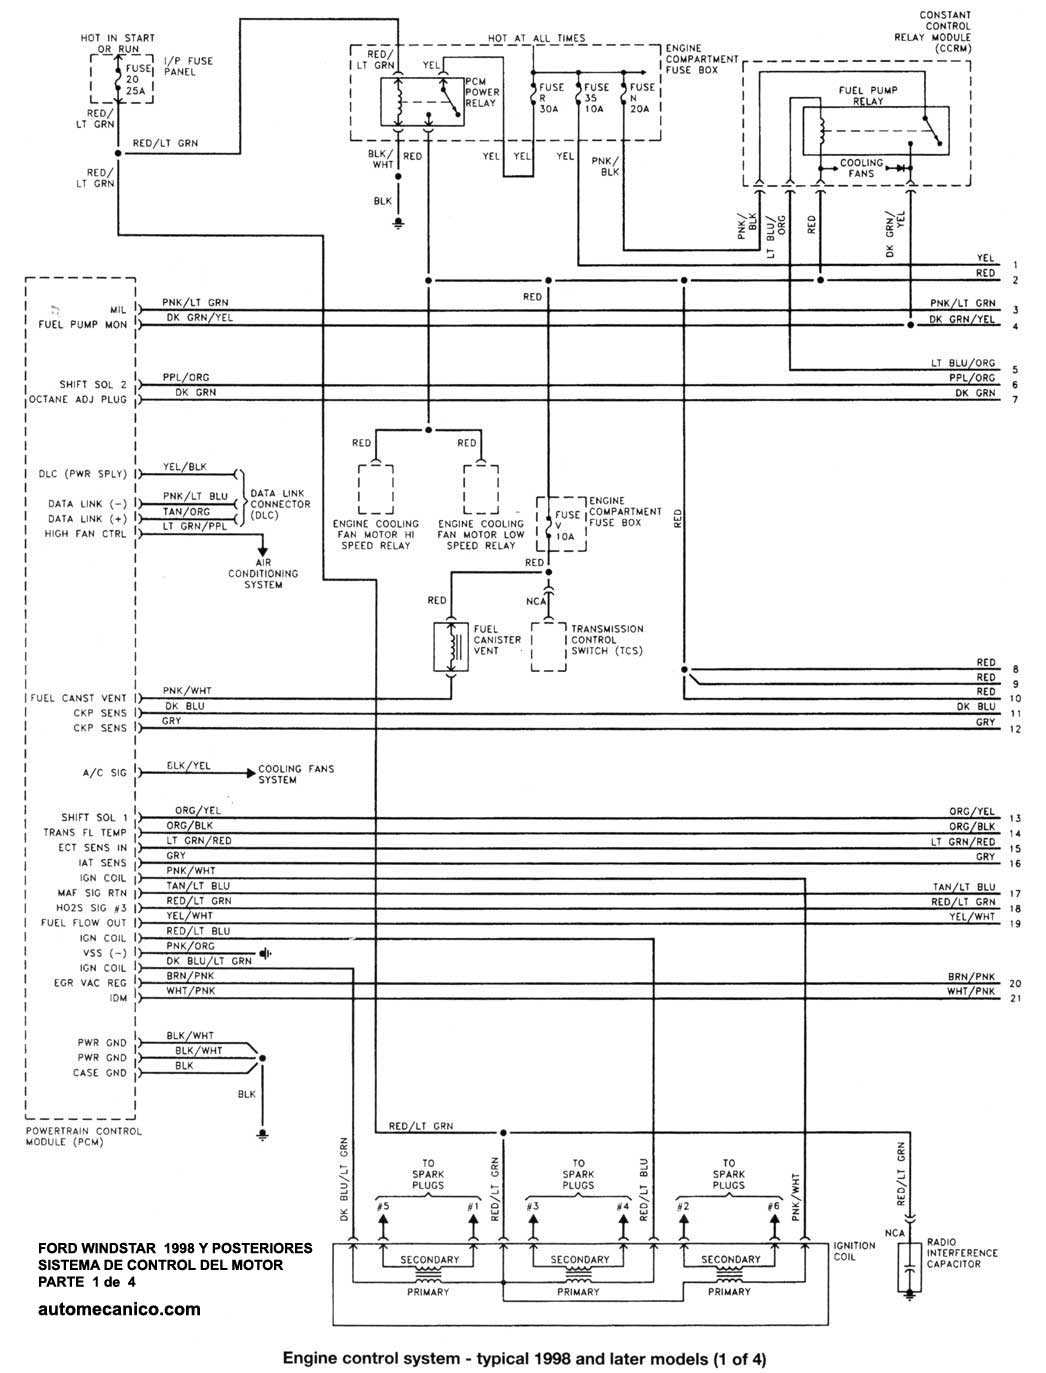 Fordwin on Diagrama Electrico De Ford